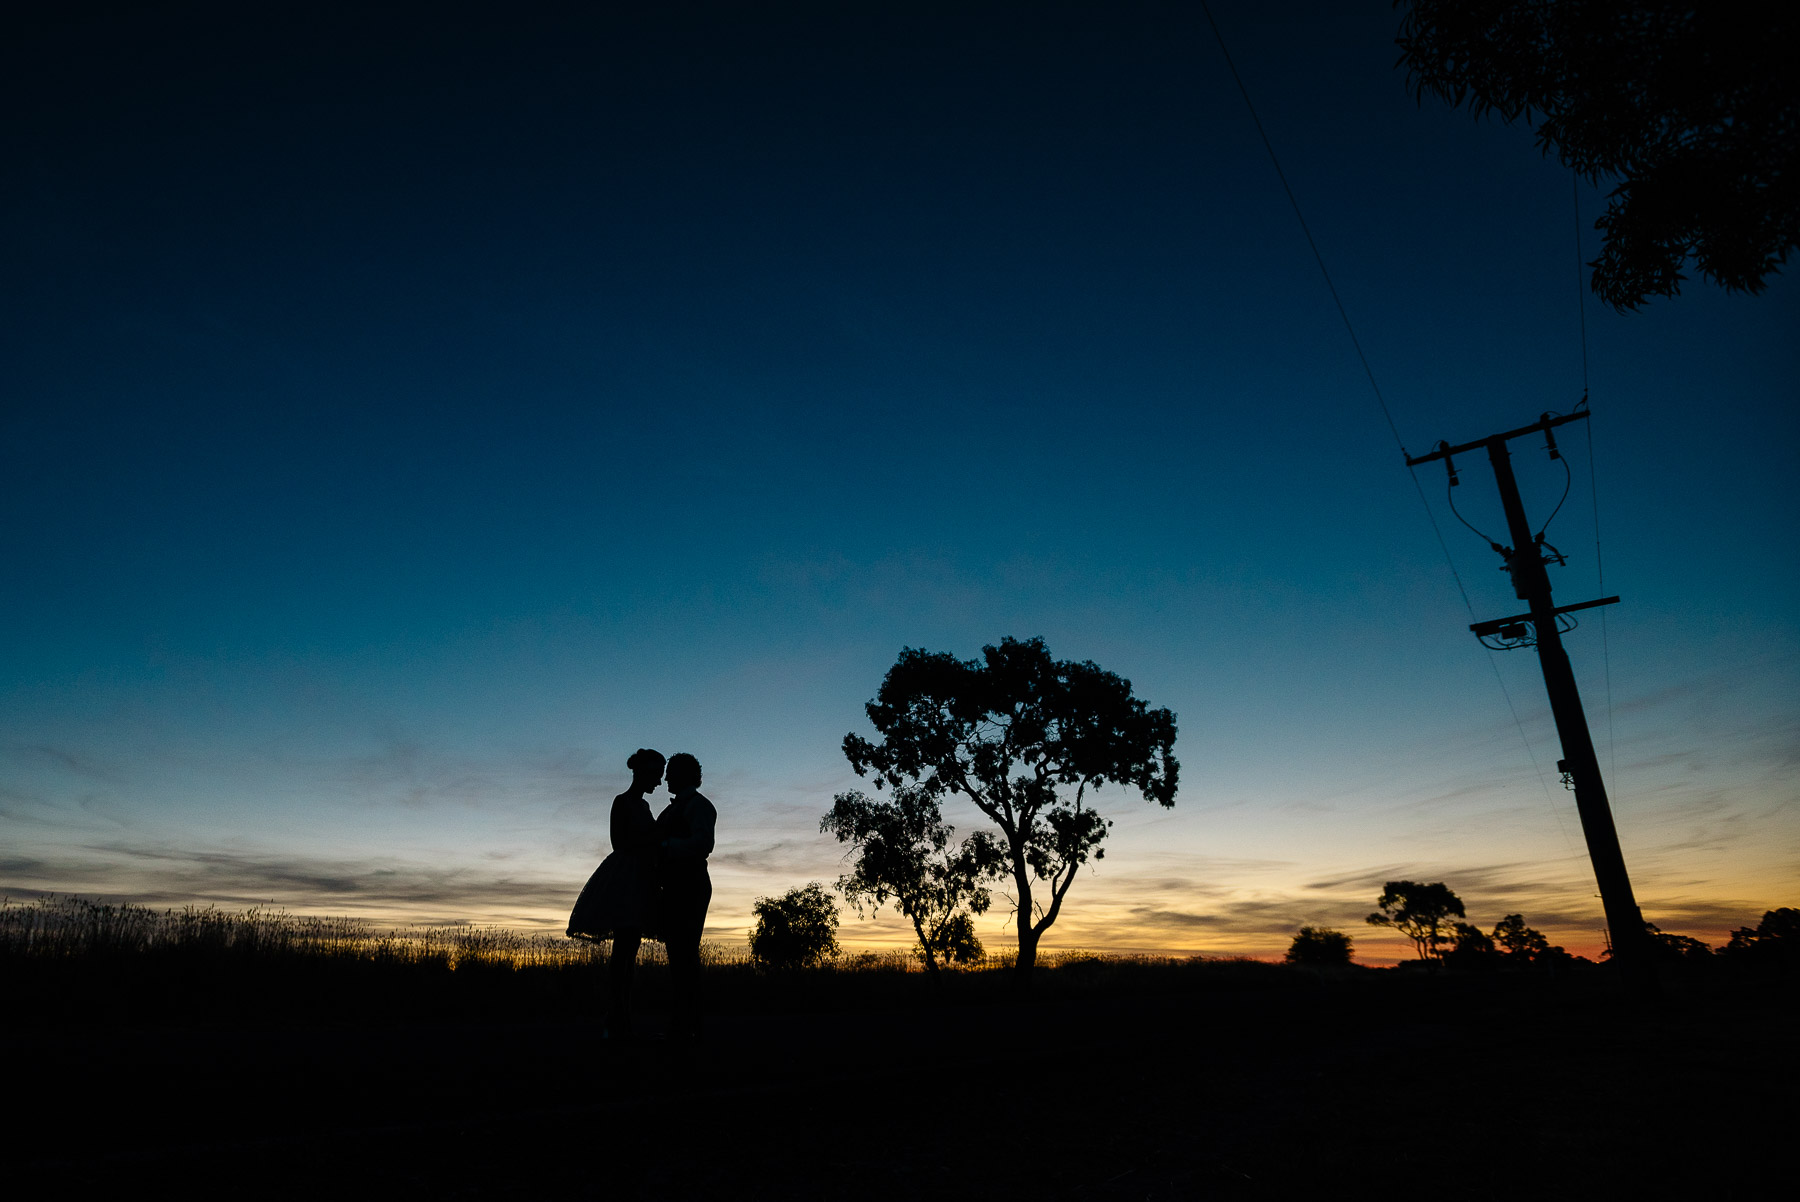 Justin_and_Jim_Best_Of_Wedding_Photography-34.jpg